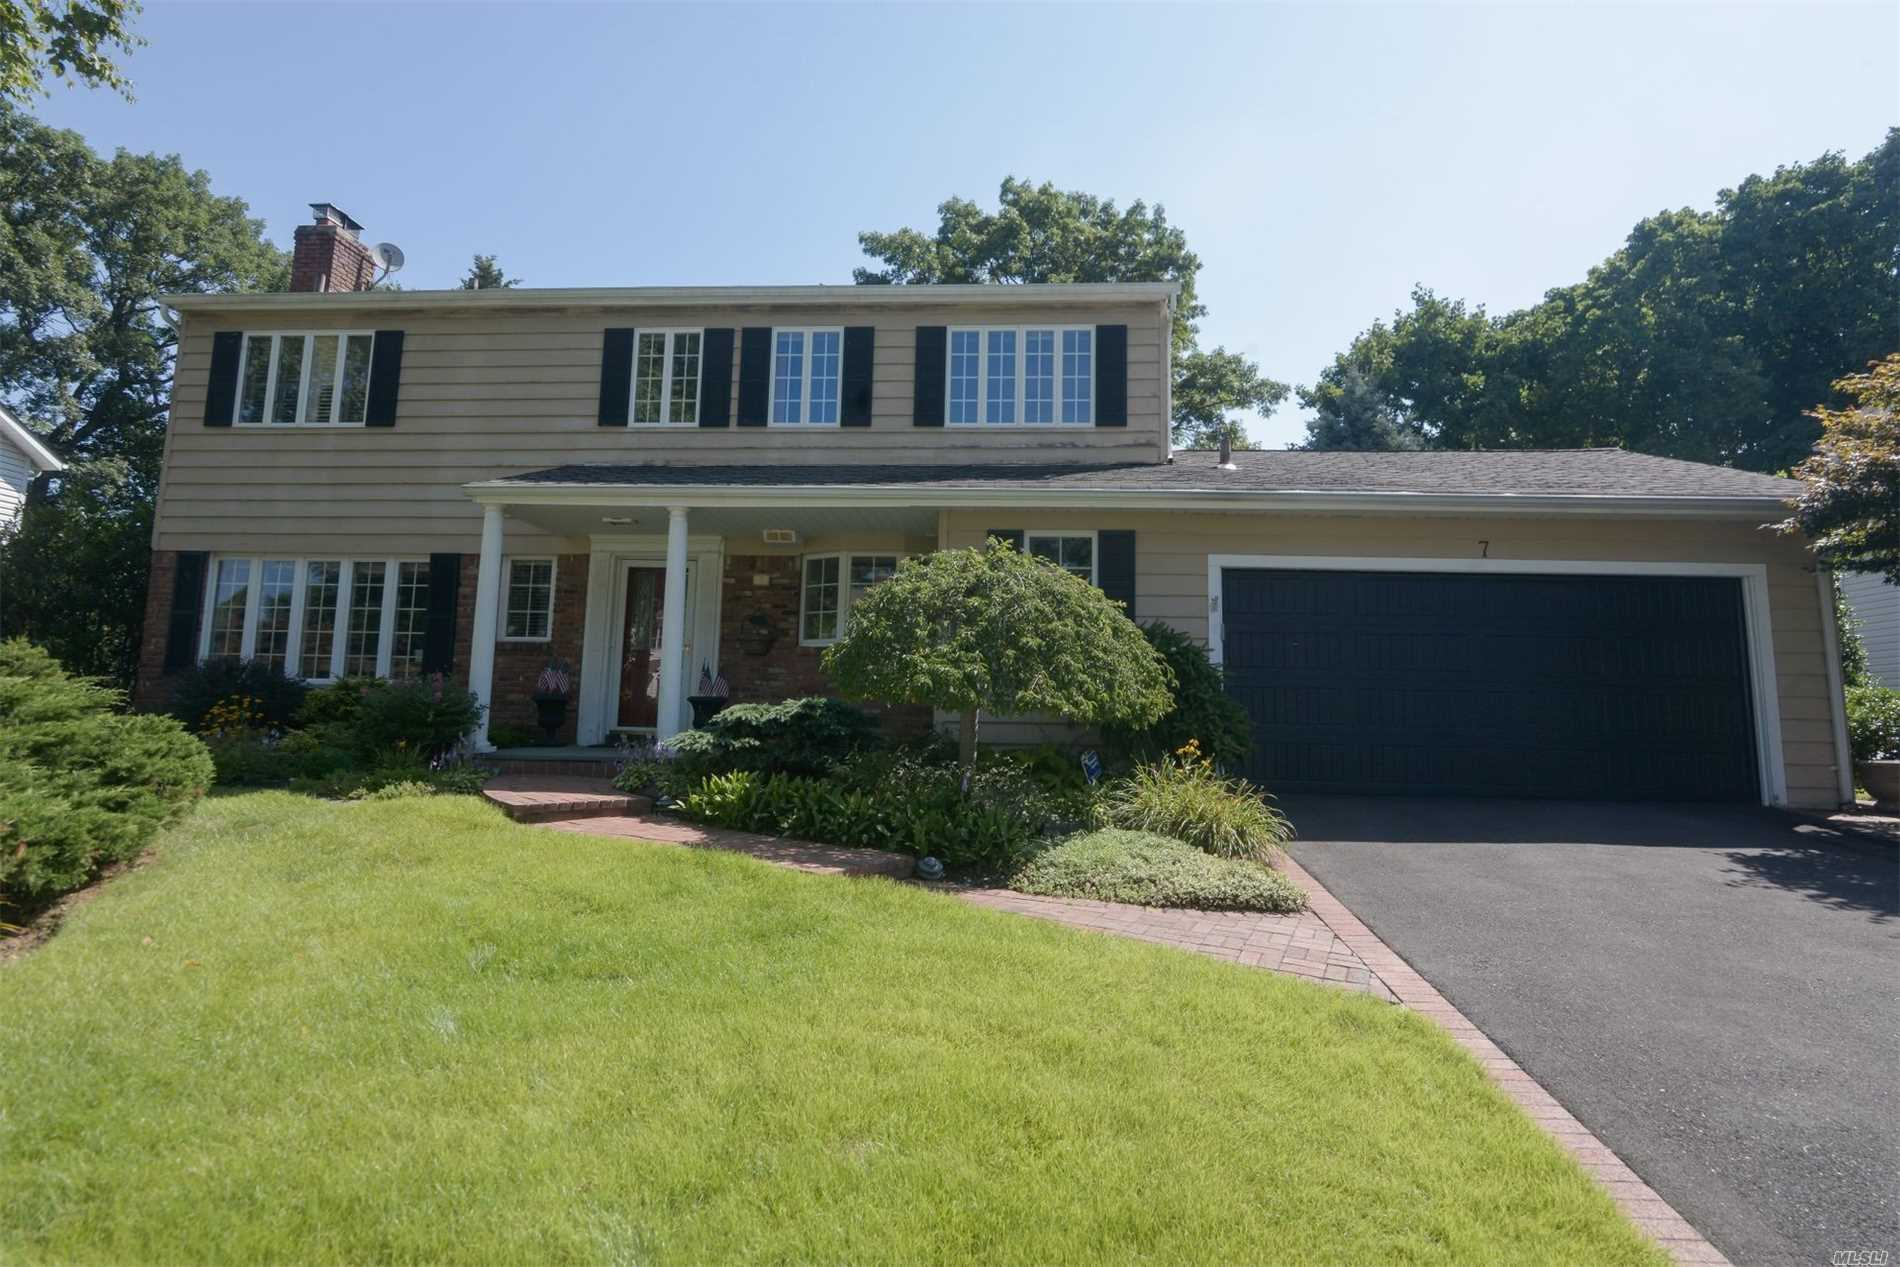 Beautiful Center Hall Colonial In Desirable Forest Estates Pool Community! Gourmet Eik, Living Room With Fireplace, Formal Dining Room, Gleaming Hardwood Floors, Full Finished Basement, Large Master Suite, Situated On Flat Beautifully Landscaped Property With A Fenced In Backyard. A Must See!